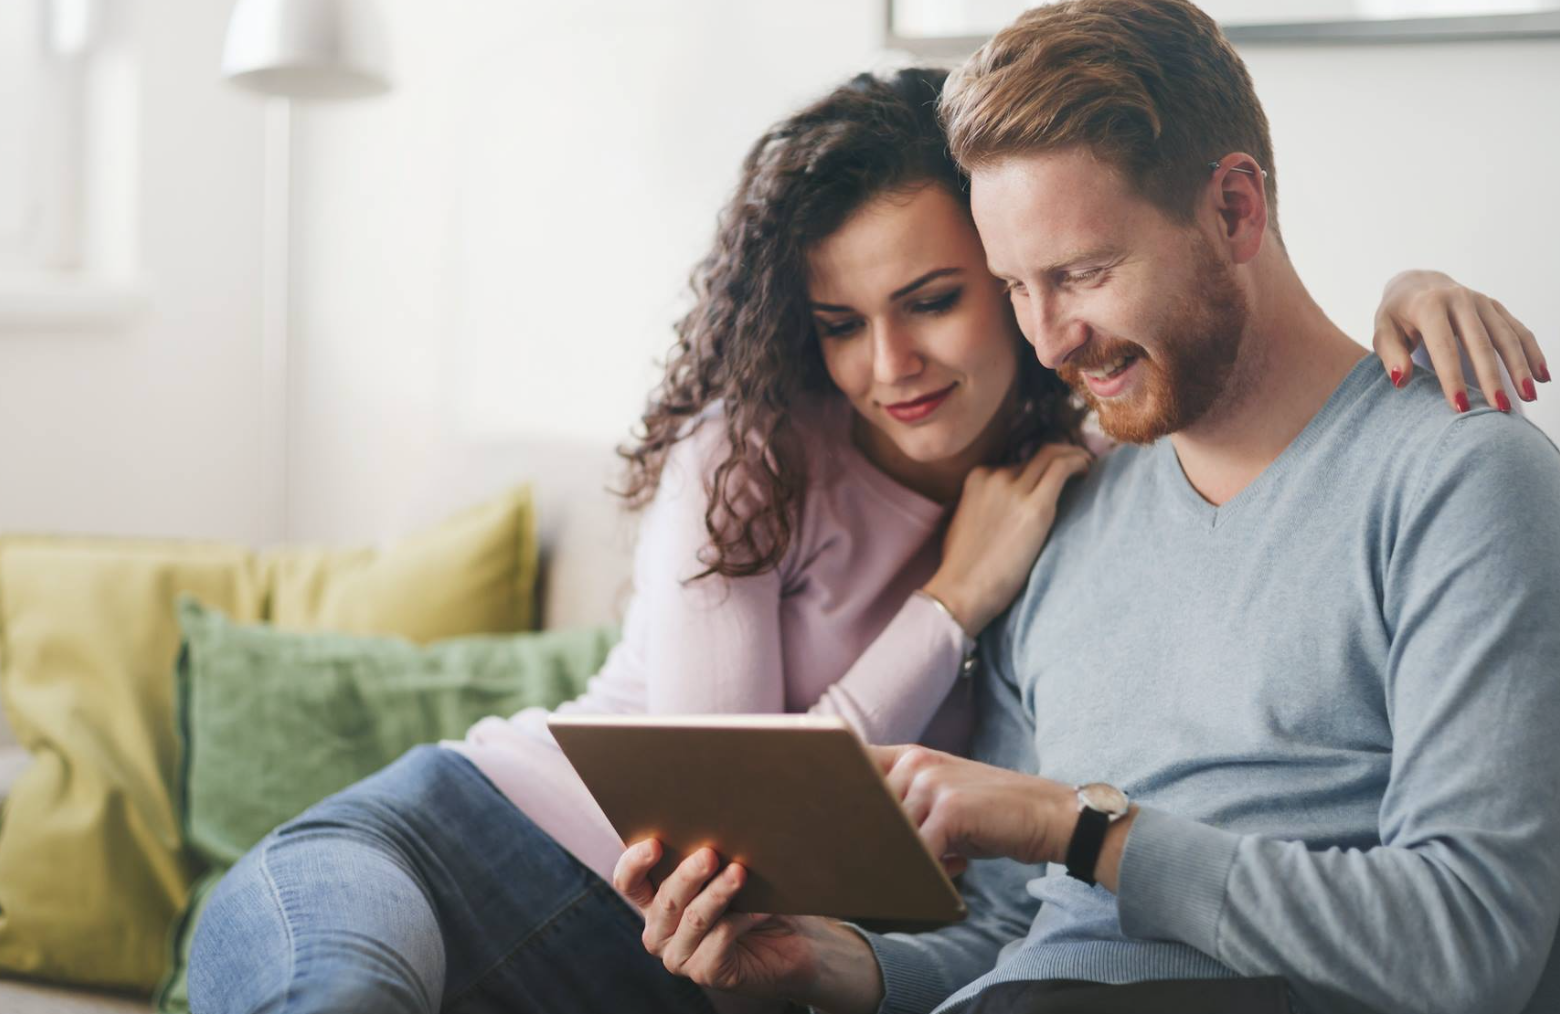 If You Re Pregnant Or Planning To Become Pregnant Inheritest Provides Useful Information About The Risks For Certai Payday Loans Same Day Loans The Borrowers